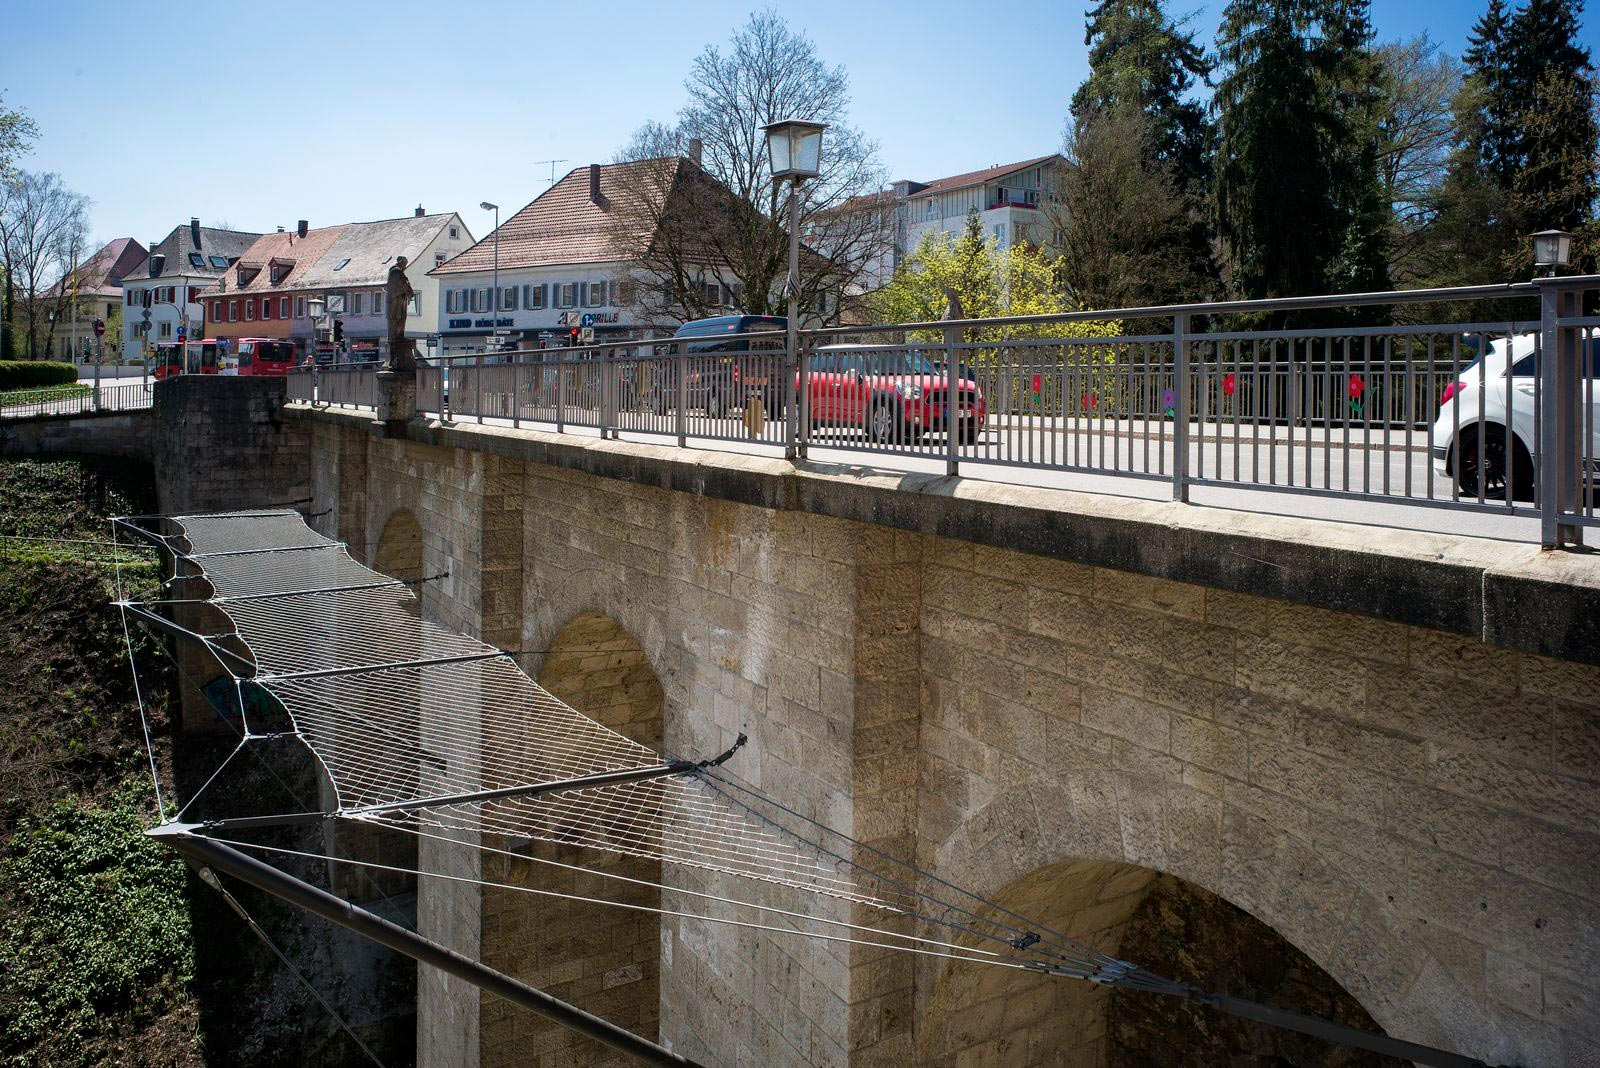 The Hochbrücke in Rottweil, Germany, with a safety and suicide prevention net by Jakob Rope Systems